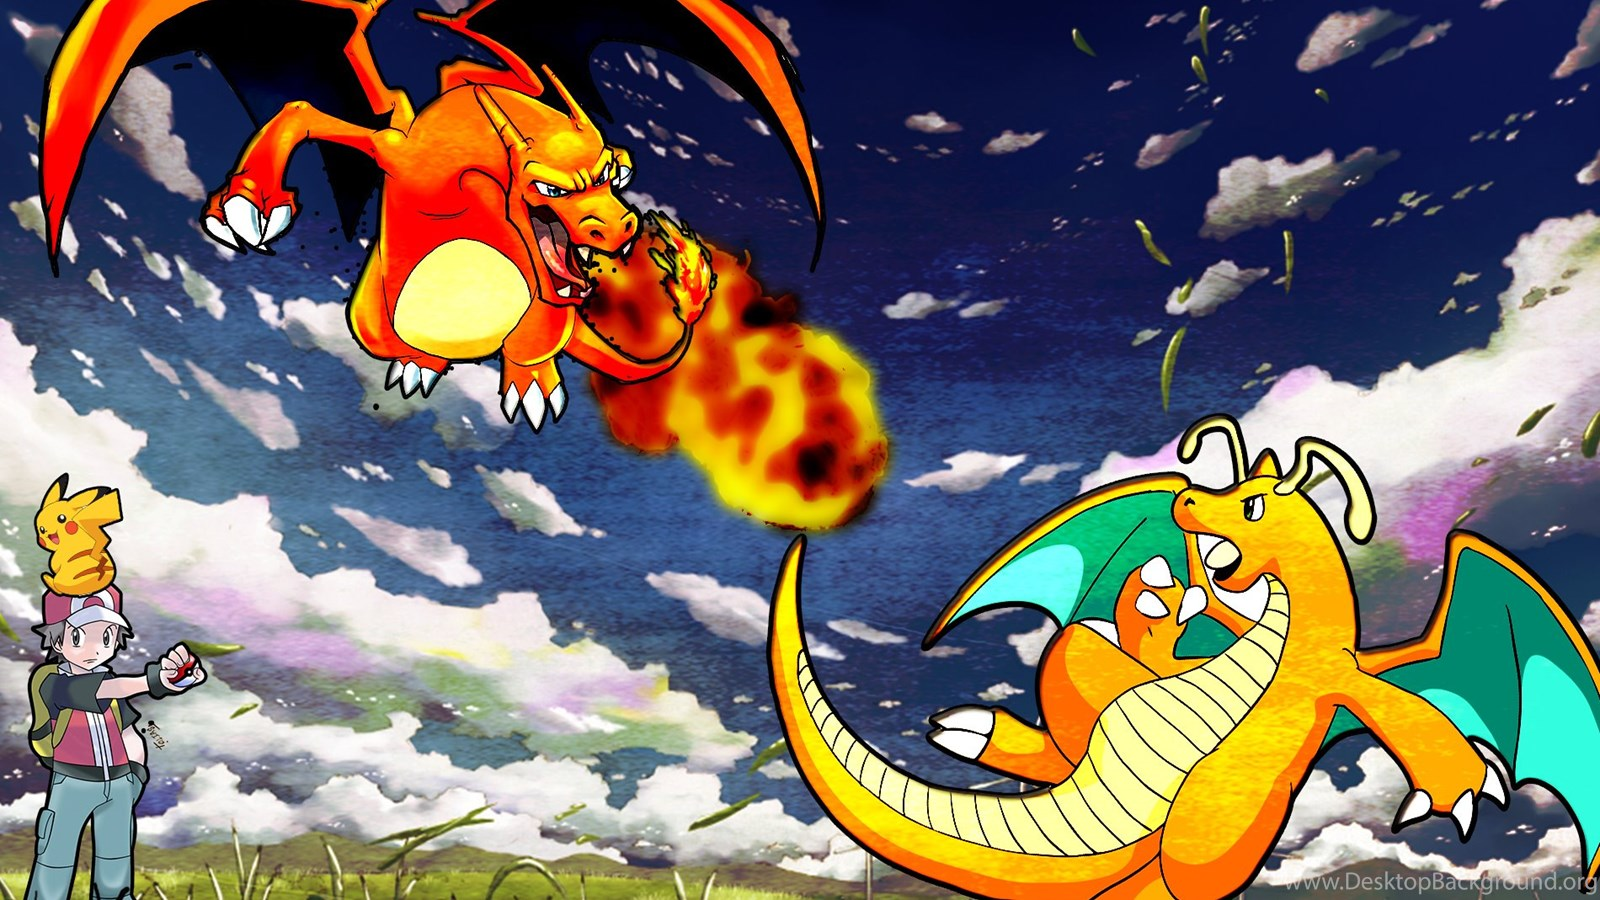 Charizard Vs Dragonite Wallpapers By Gamingthefudge On DeviantArt